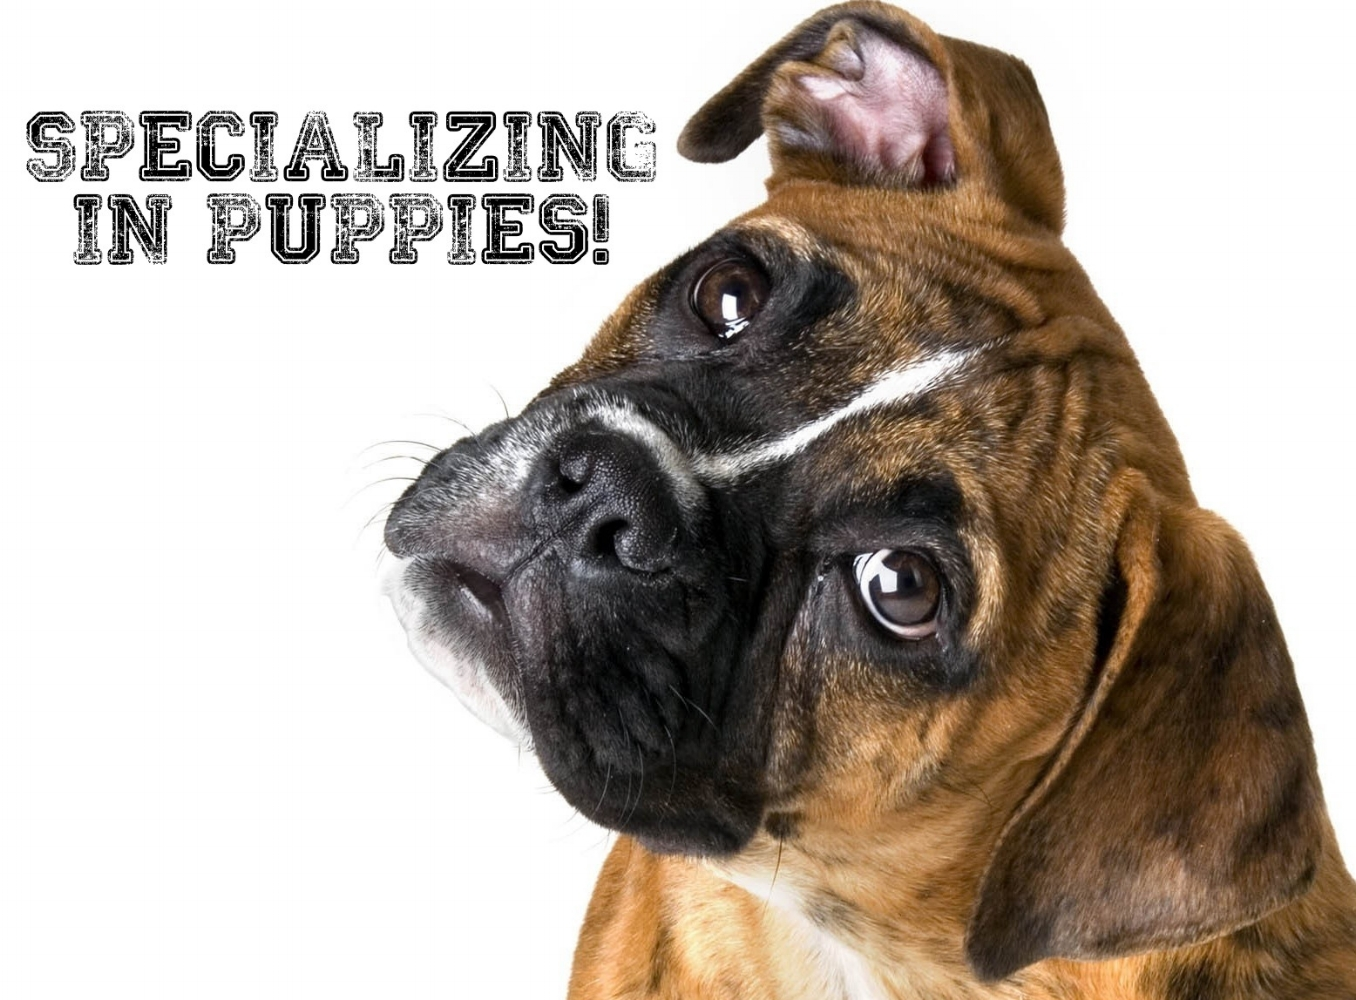 We specialize in puppes!